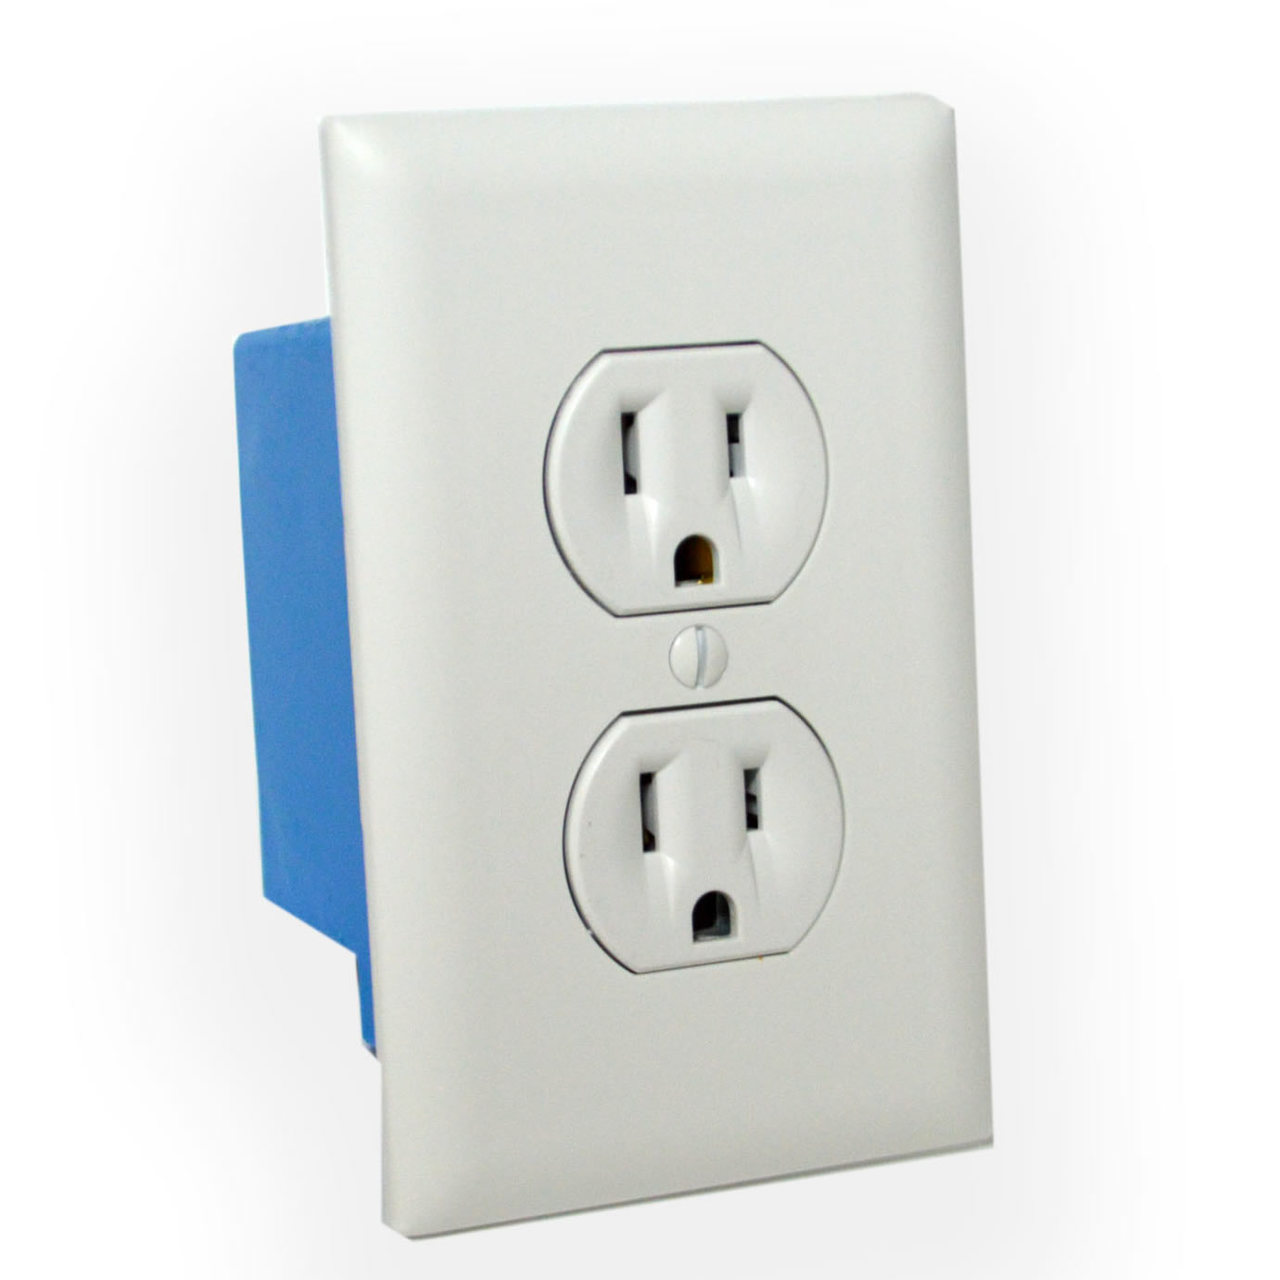 Wall Outlet Hidden Camera w/ DVR & WiFi Remote View (Hardwired) IMPORTANT: This device is meant to be installed into a hole that you will need to cut into your wall and installed professionally by an electrician. While the device gets hardwired into your electrical lines, the Wall Outlet is NON FUNCTIONING for plugs from devices to get electricity from. Record & Stream Stunning 1080p HD Video This decoy outlet is a perfect recording device. Every home or business has one everywhere and they always go unnoticed. It's a perfect addition to any connected home and provides added security with a built in hidden camera so you can keep track of your kids a nanny or simply want to keep an eye on your expensive electronics. Nothing will indicate this device is anything other than your average coffee maker. Even if the camera is handled by someone curious, the electronics are sealed inside. Within minutes you can have the device set up to view live video footage from thefree downloadable appfrom your smartphone, or tablet. This camera can be viewed and/or record videos in1080P, 720P, or 480P videoover awide viewing angle of 90°.No need to worry about the battery lifeon this camera as it is powered via normal AC power. Great for use as a nanny cam or cheater catching device, it is highly unlikely someone would suspect a camera within this commonplace object. All the video being recorded is in crisp & clear HD quality color. This ensures you'll be able to make out all the details of activity in the room you're recording Record Weeks Of HD Video Onto A Removable SD Card  Using an optional 128GB SD card, you'll get about 60+ hours of continuous video, or with motion activation mode only, you'll never run out of video memory. The choice is yours. With adjustable frame rate controls, it's easy to capture weeks to months of hidden videos. Since normal motion that your TV plays back at is at 30 FPS, recording at a lower FPS (frames per second) will enable you to store much more foota